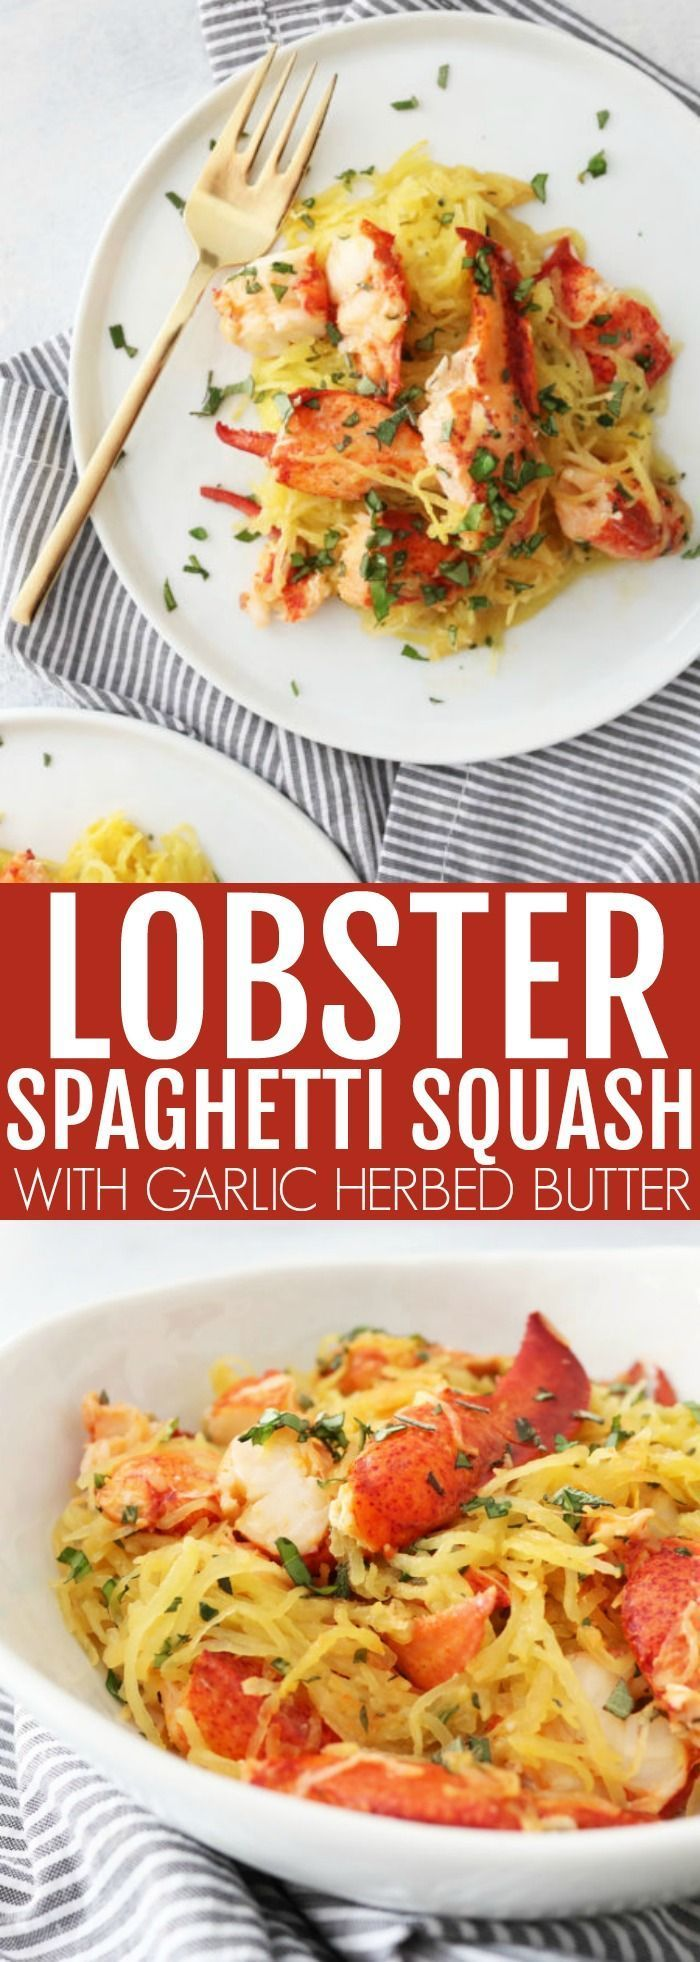 This lobster recipe is so delicious, decadent, easy, and flavorful! Low carb and gluten free, this is a lightened up meal that doesn't disappoint on flavor! thetoastedpinenut.com #lowcarb #glutenfree #lobster #seafood